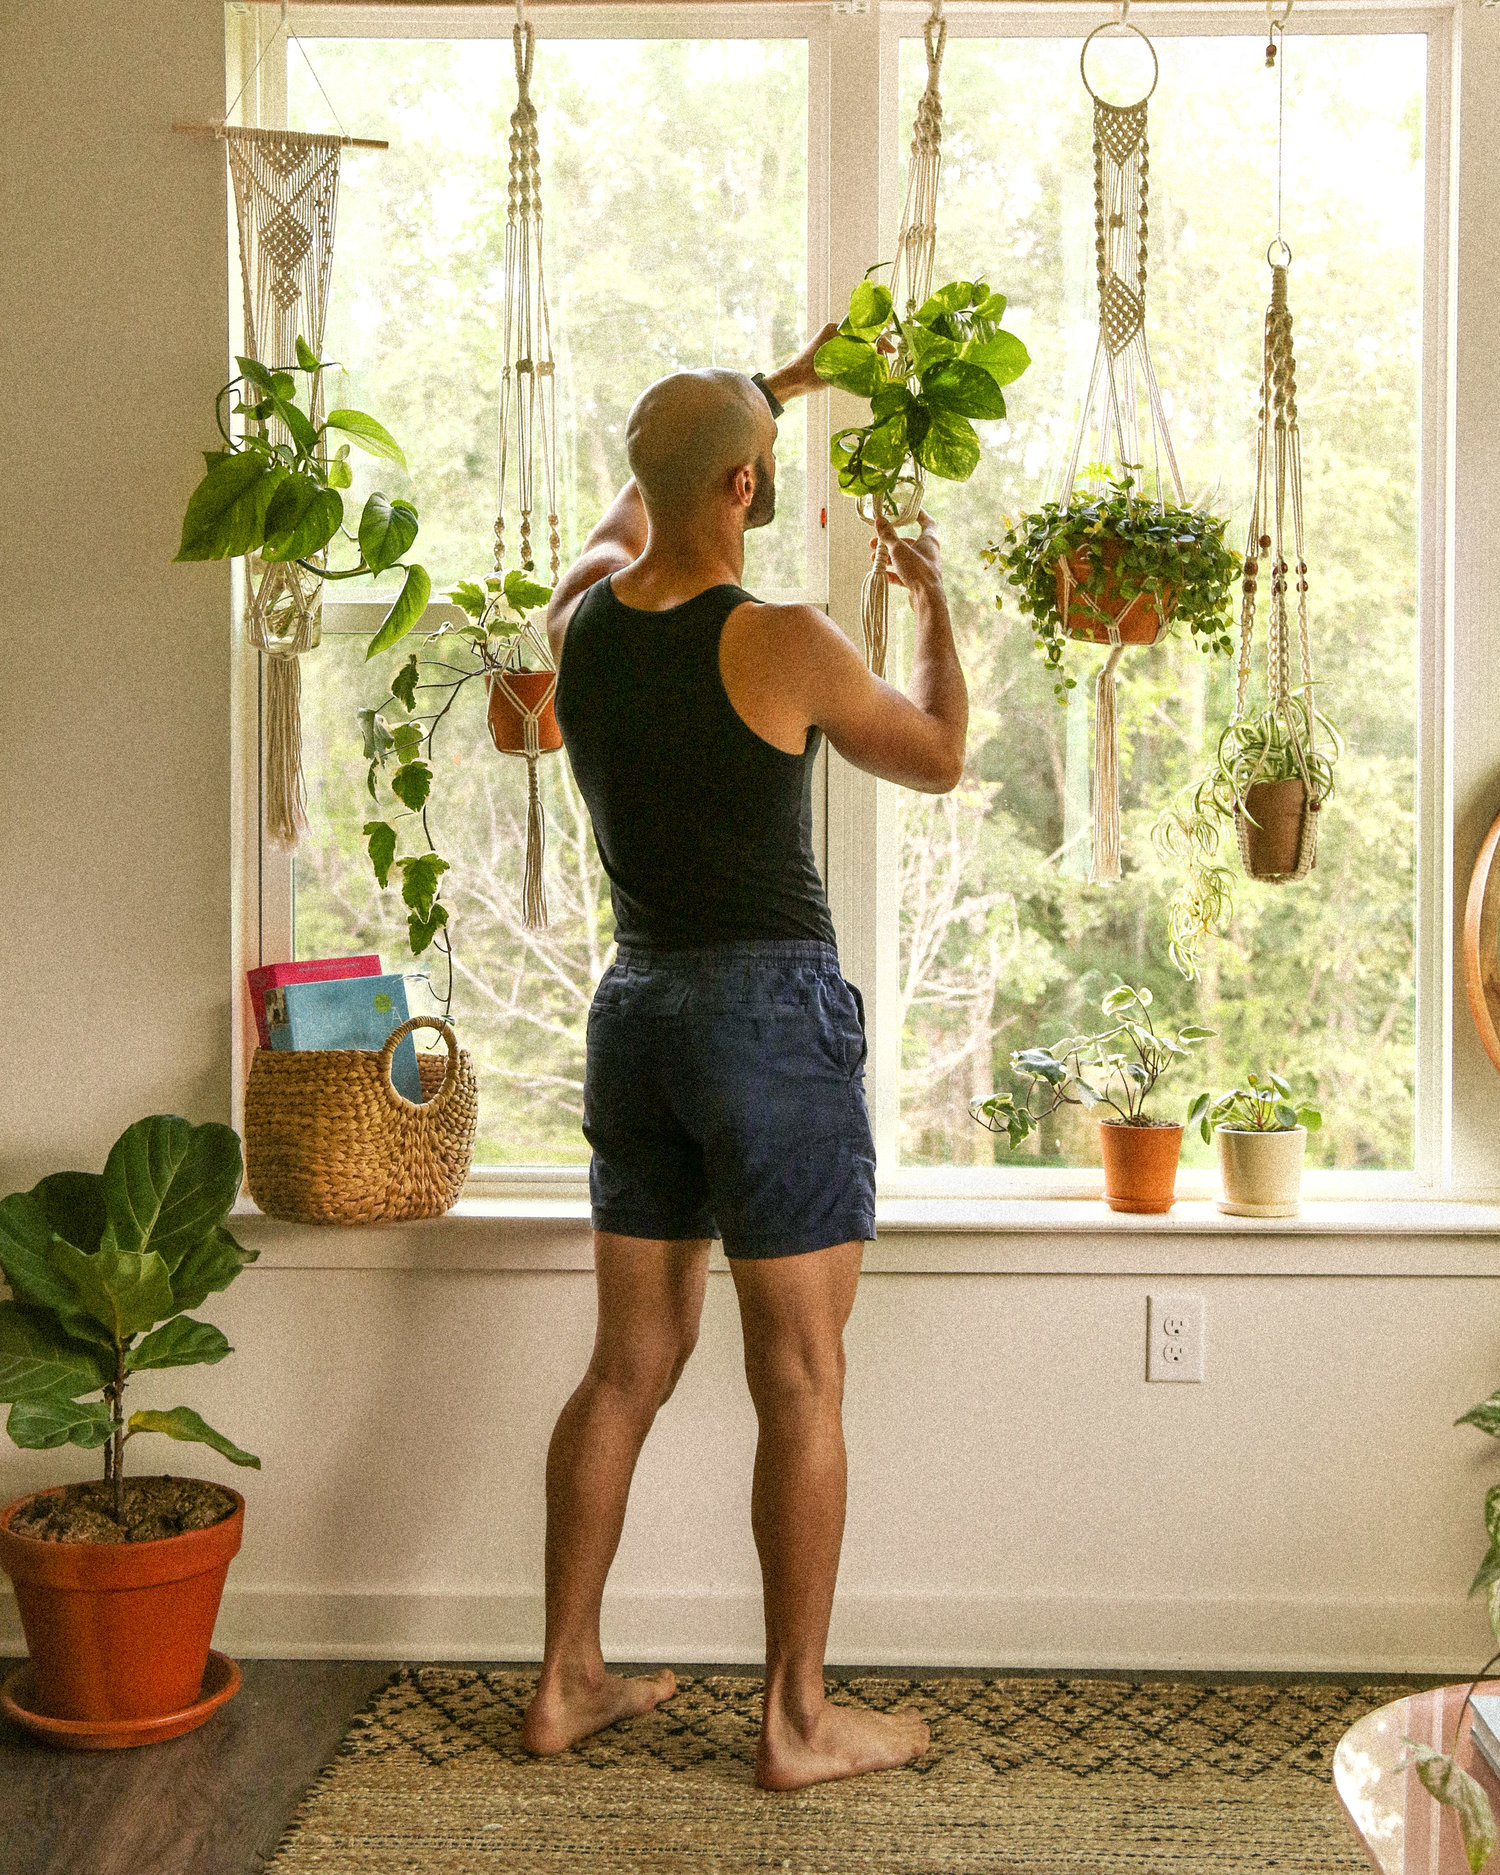 DIY Adjustable Plant Window Renter Friendly — Probably This